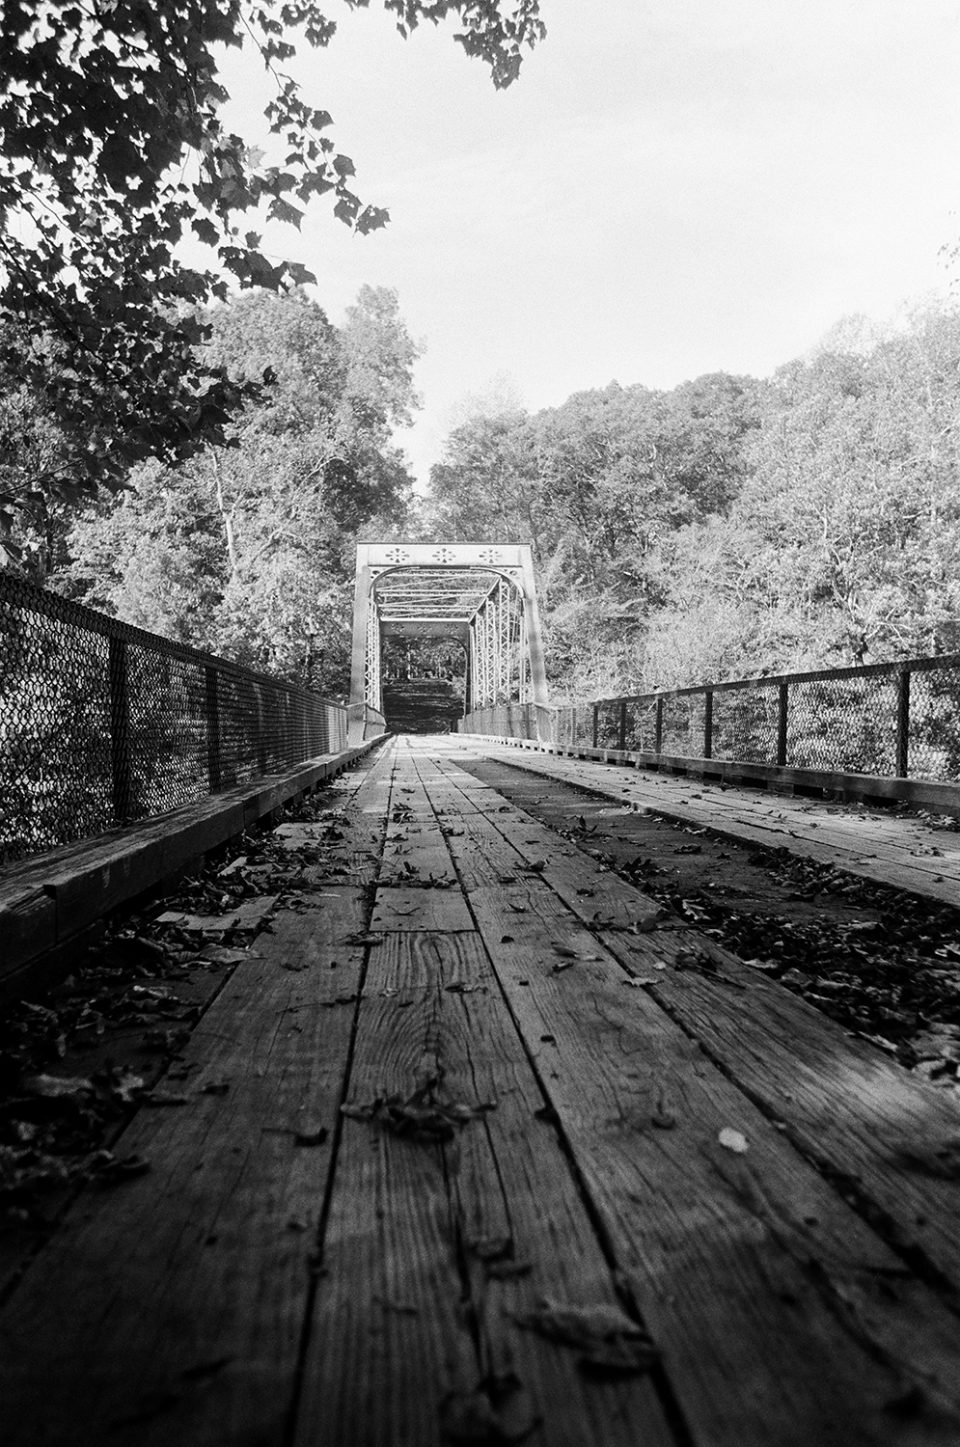 The final shot on the roll, this old one-lane bridge appears to be free of flaws or artifacts. Shot with a Canon AT-1 with an early 80s model Canon FD 28mm lens, on Ilford HP5 film.